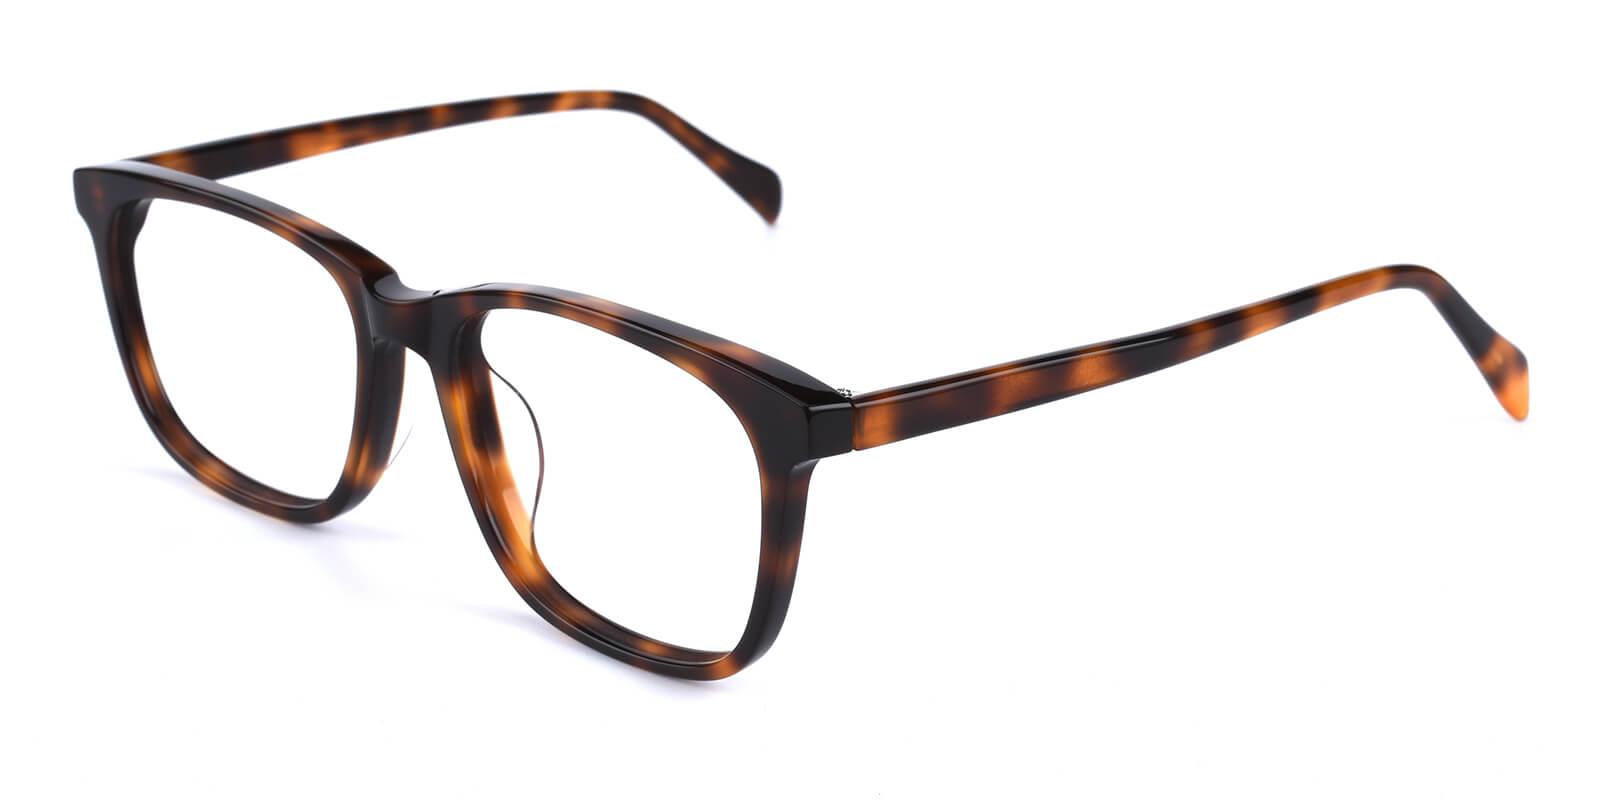 Bugger-Tortoise-Square-Acetate-Eyeglasses-additional1